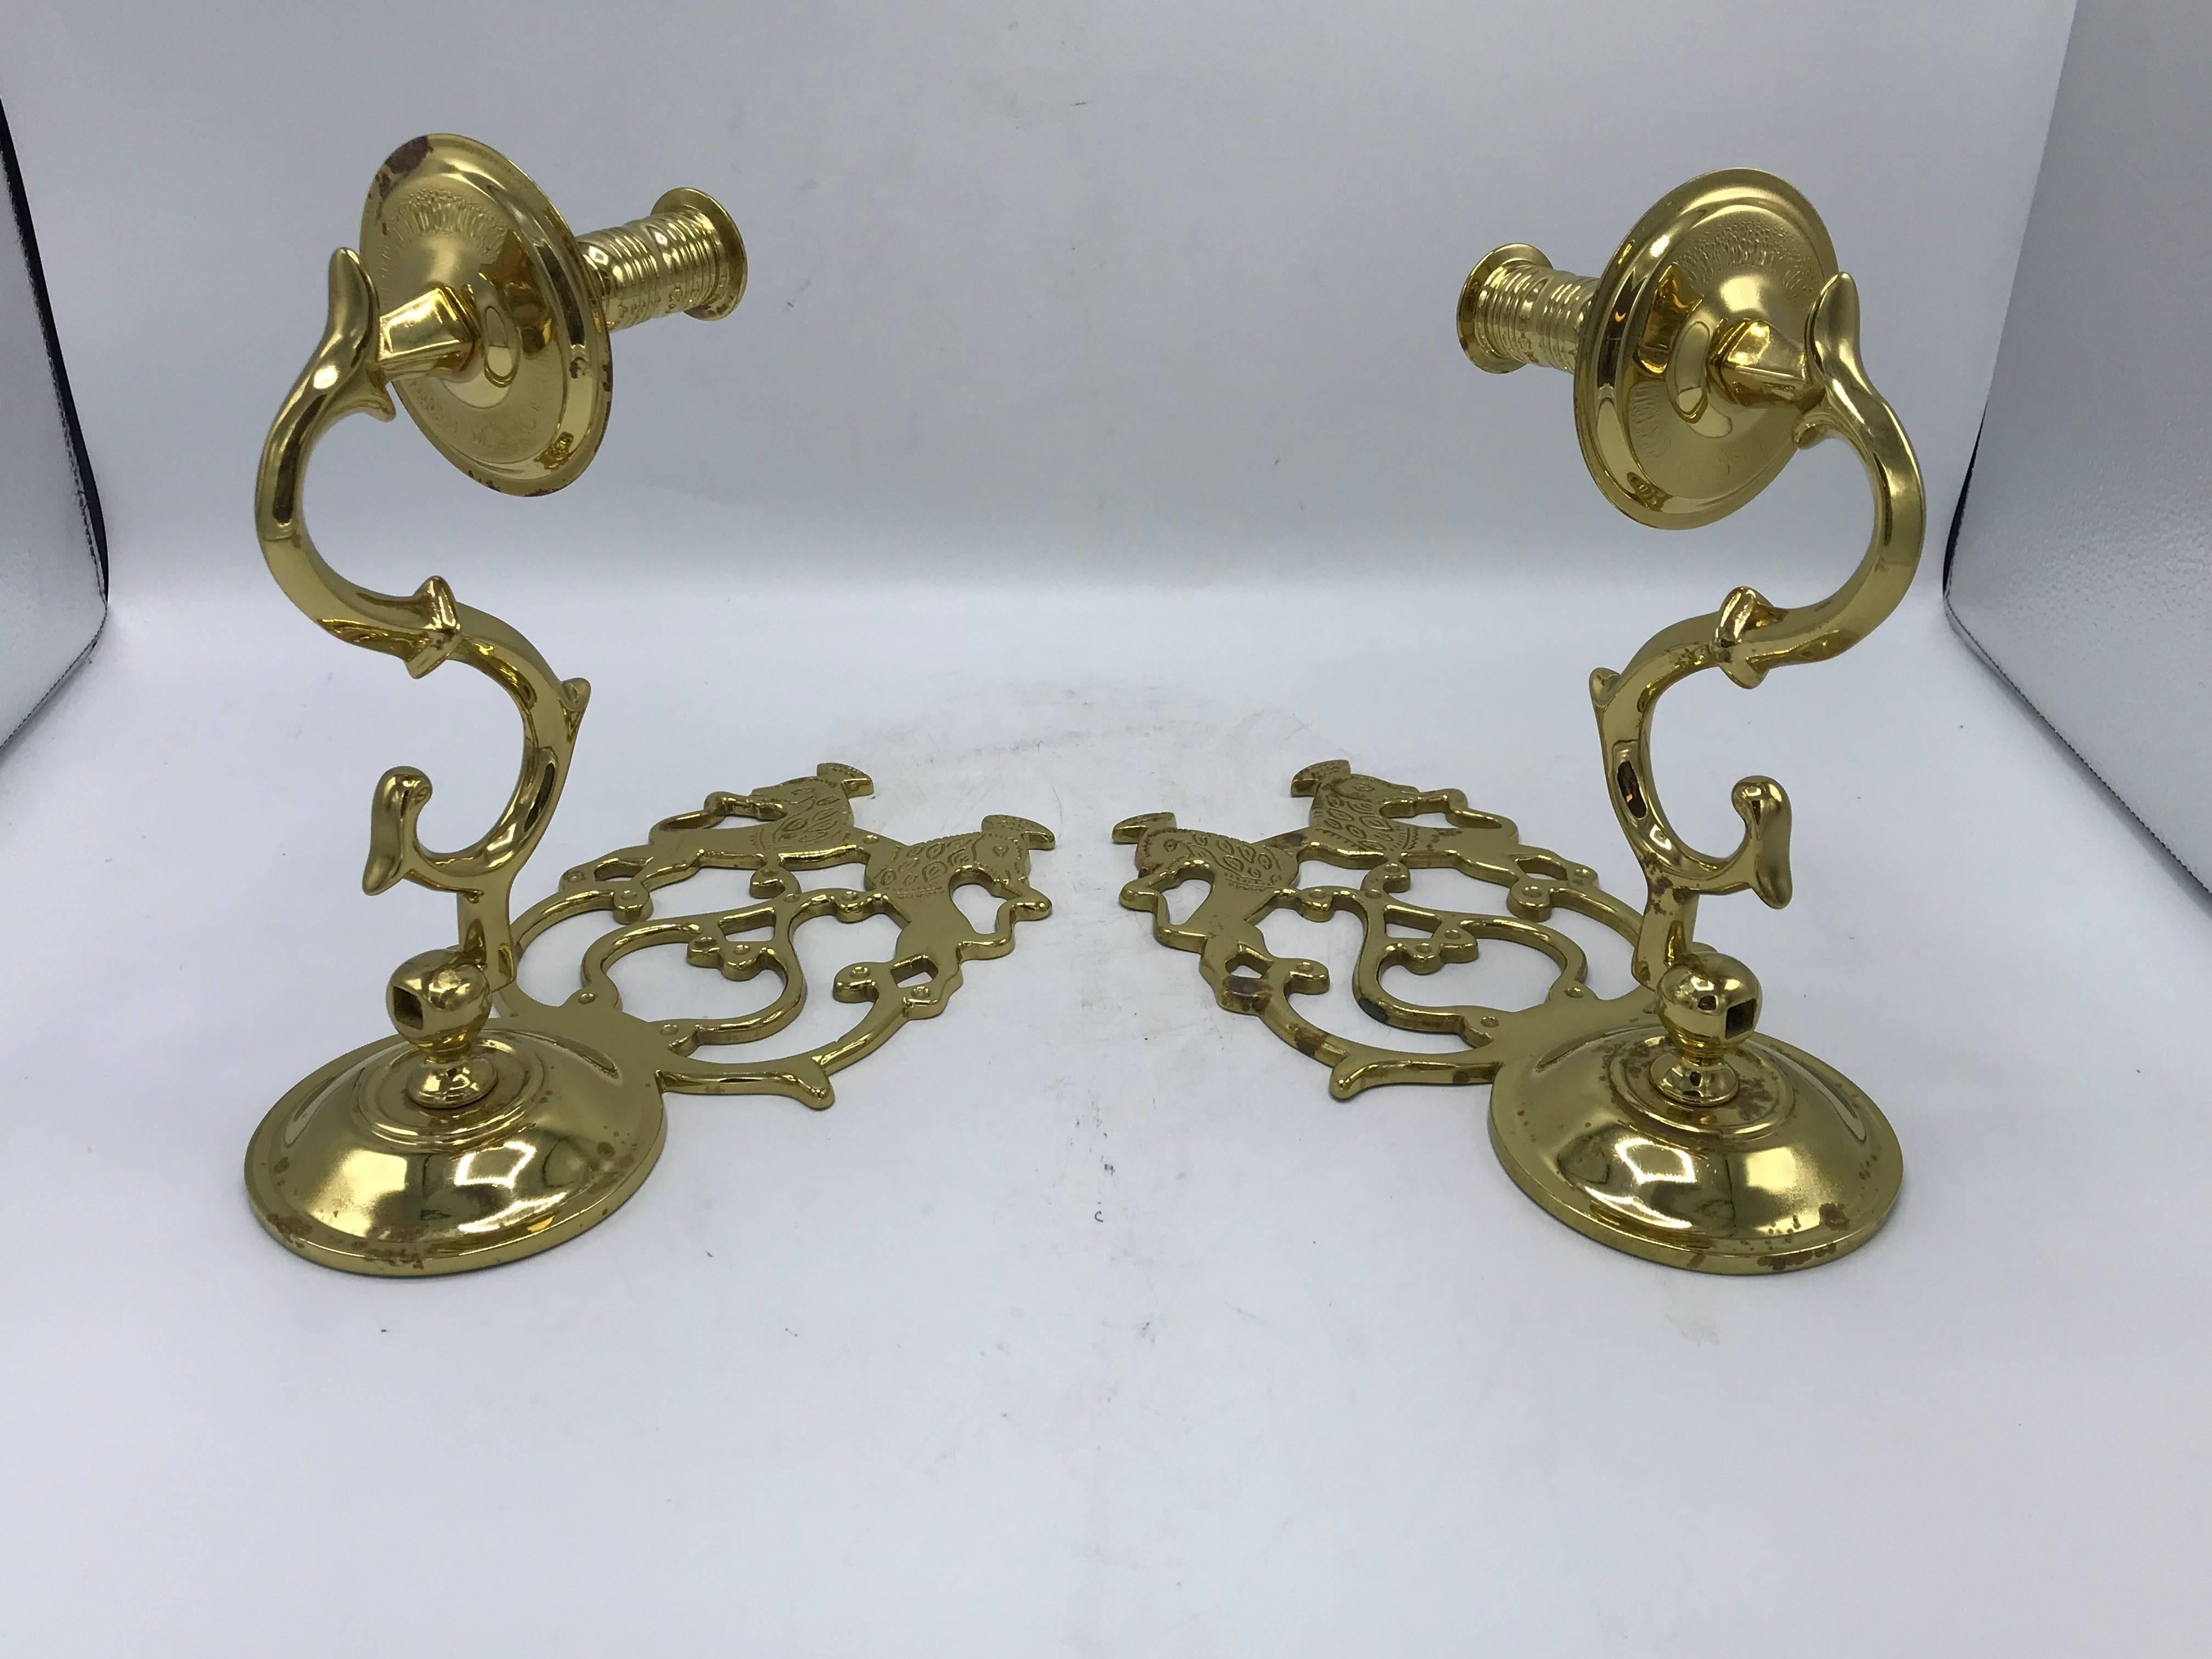 1960s Virginia Metalcrafters Single Arm Candle Sconces With Crest Motif Pair At 1stdibs